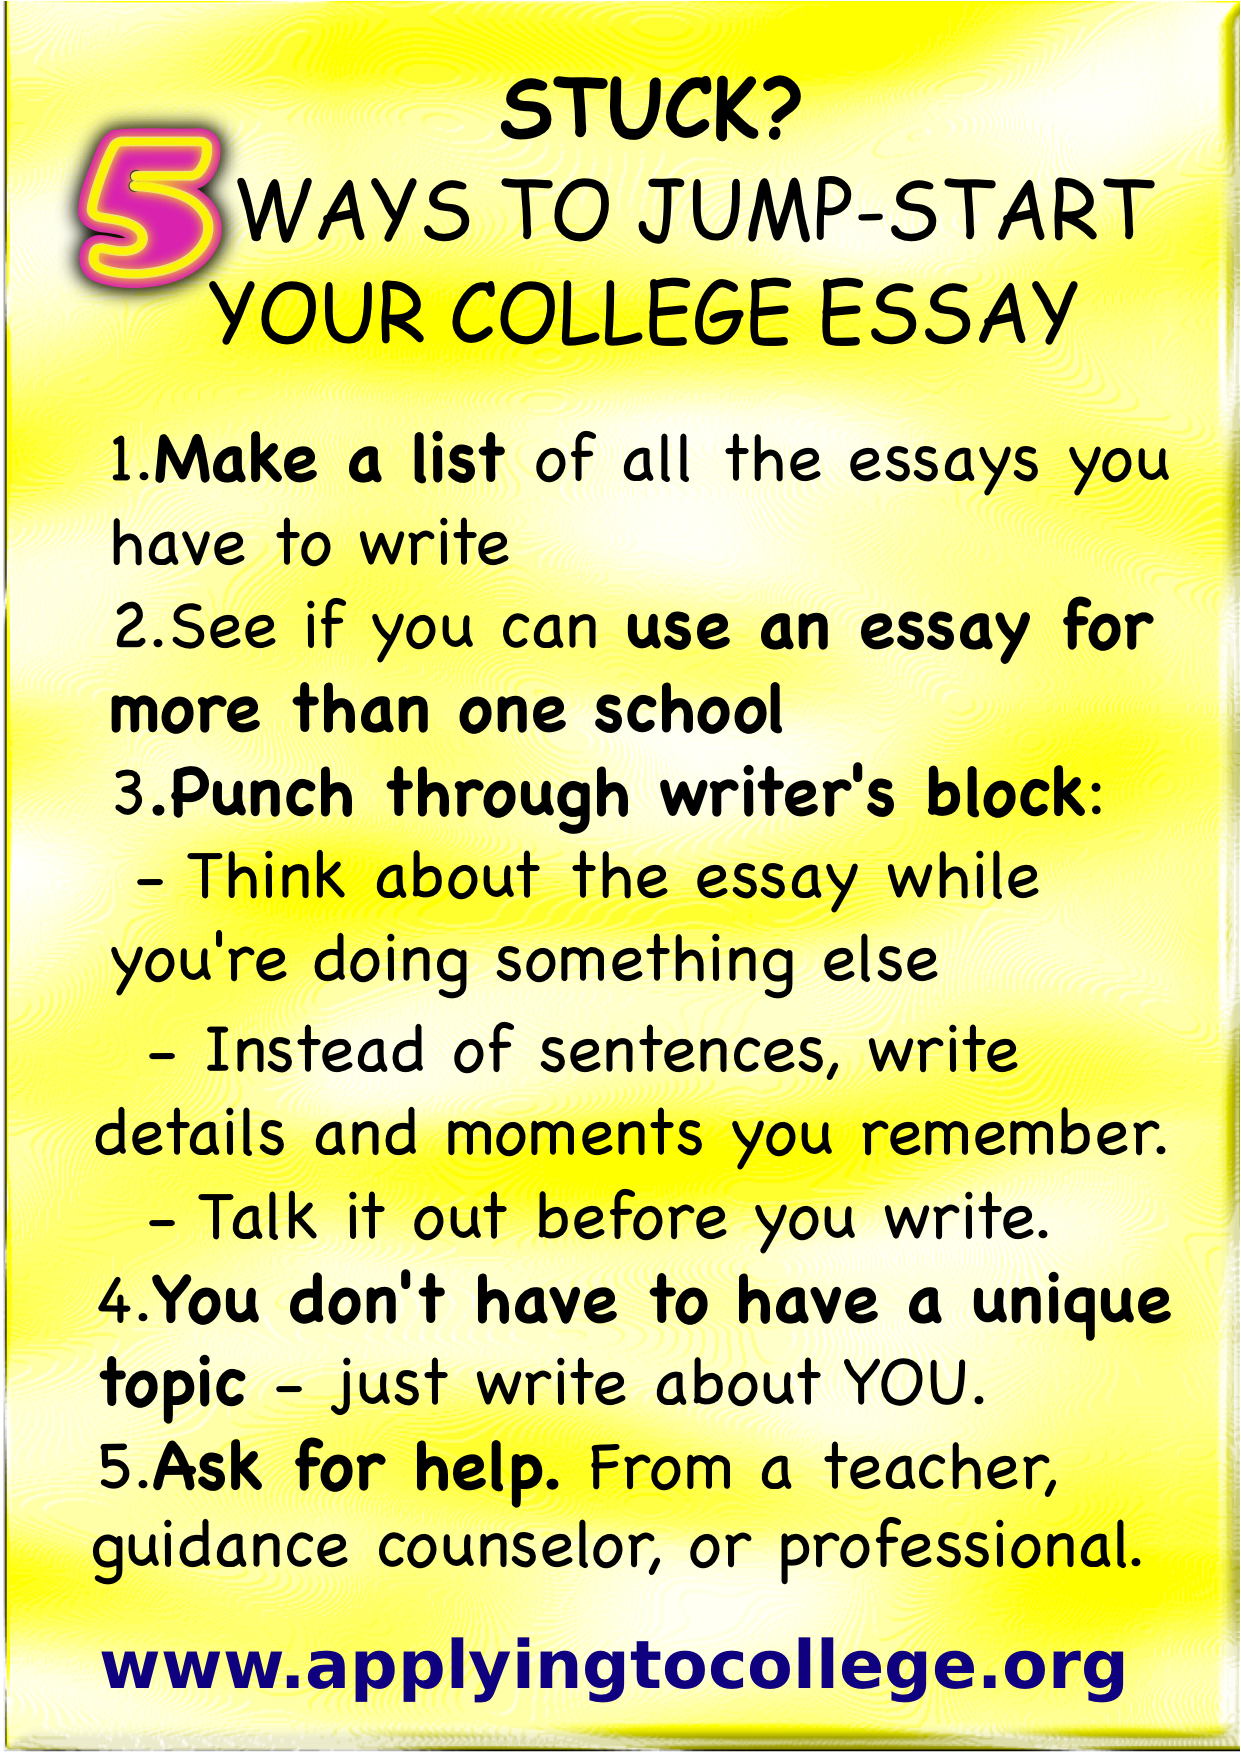 How to start a good essay?